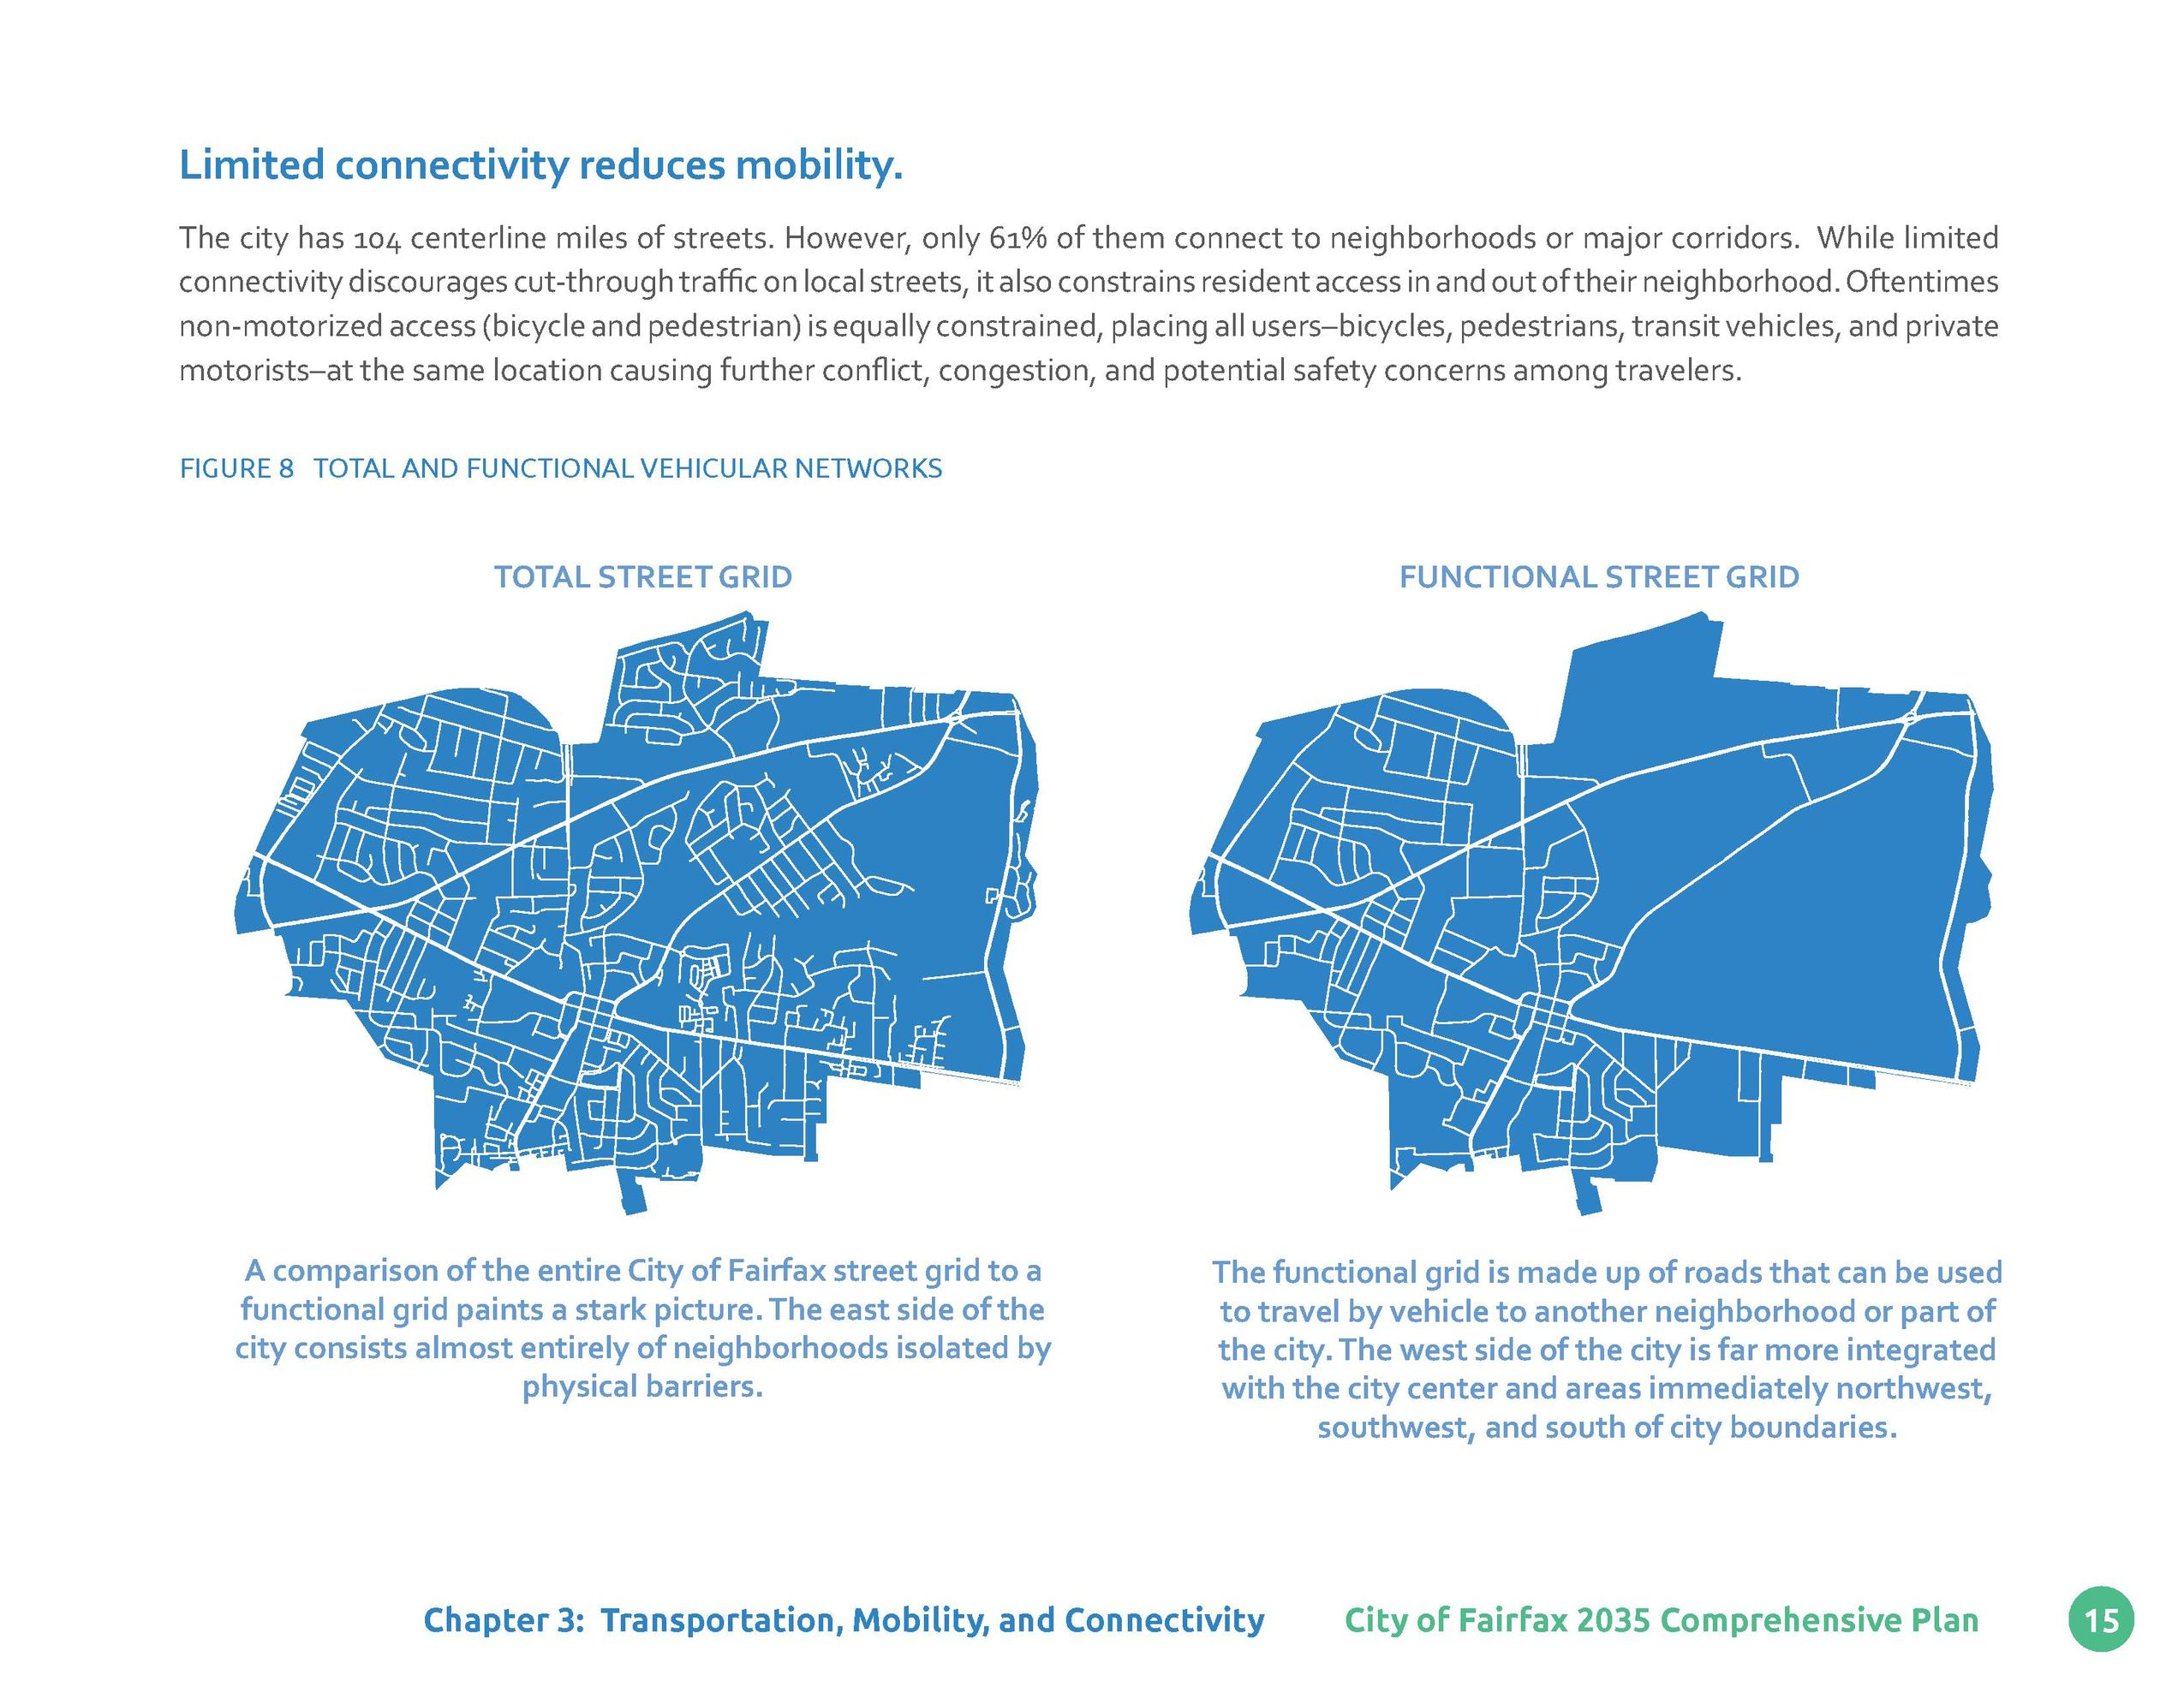 Limited connectivity reduces mobility. The city has 104 centerline miles of streets. However, only 61  of them connect to ...